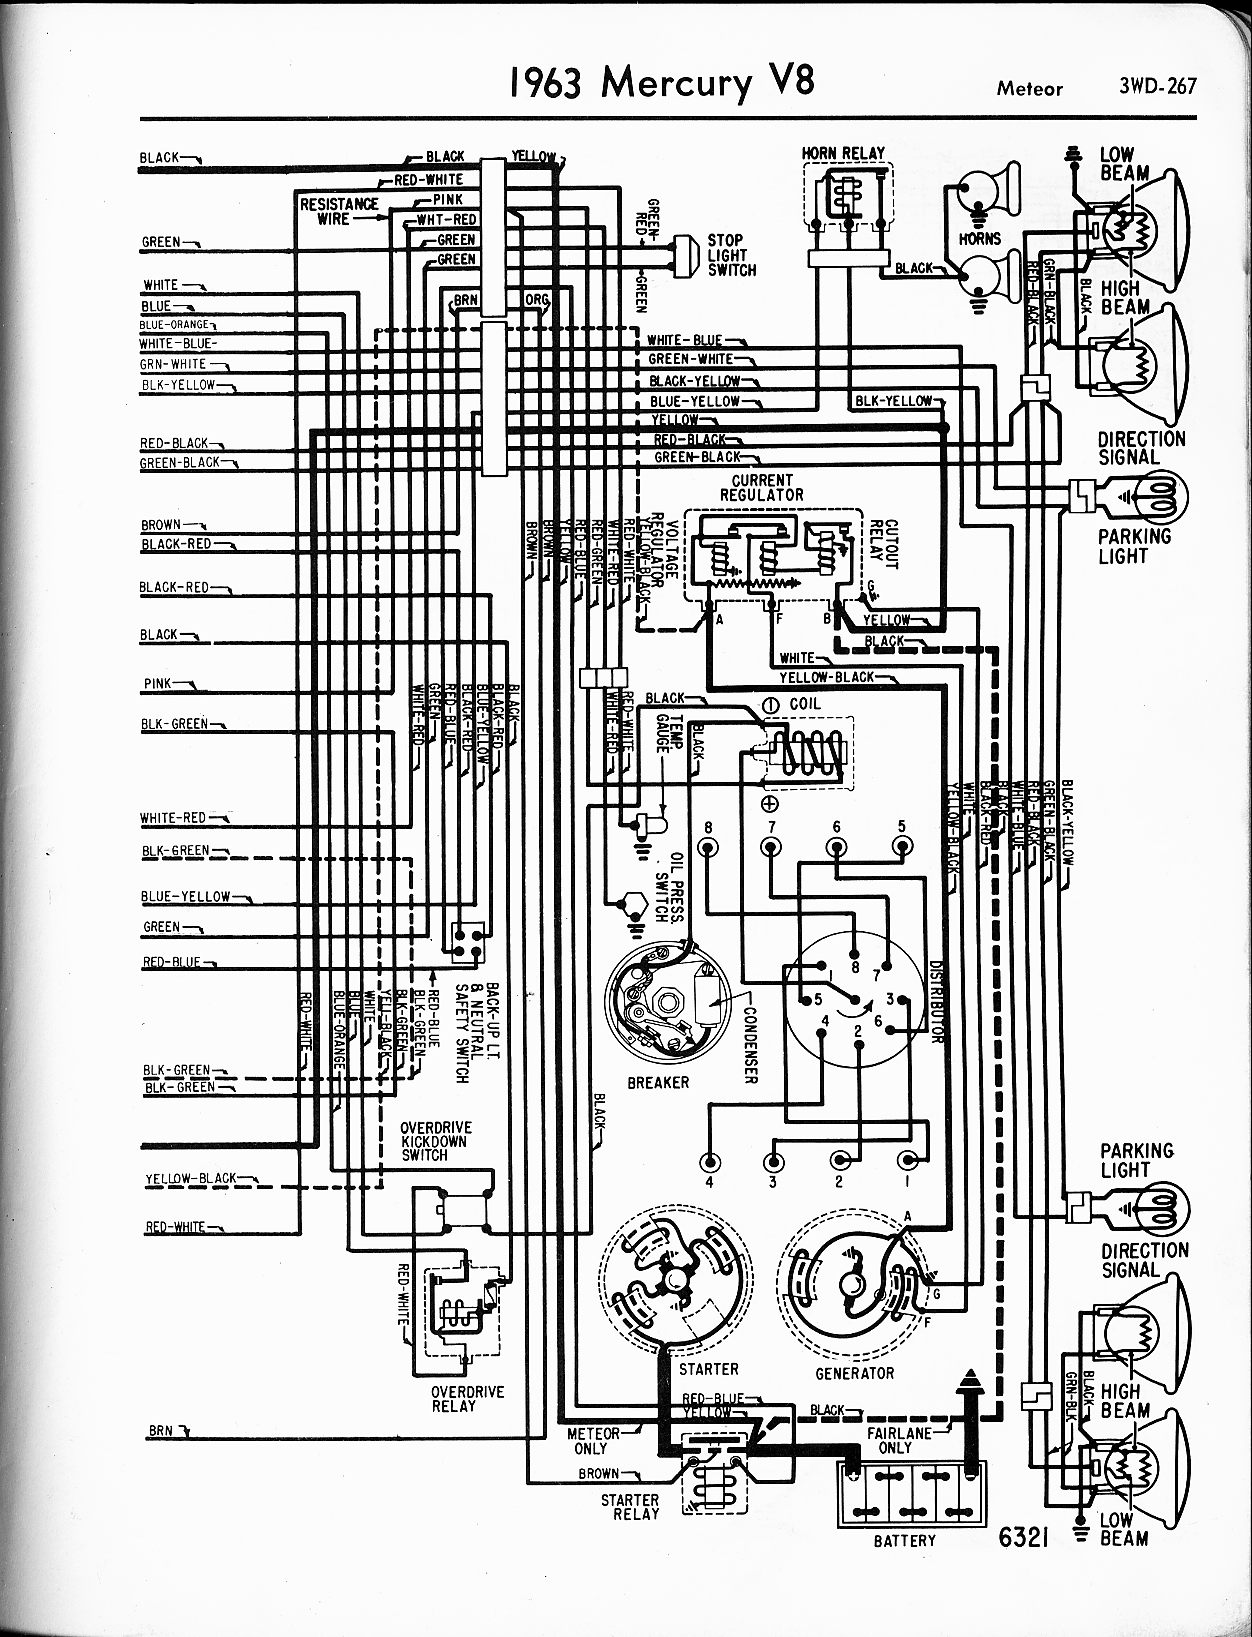 Mercury wiring diagrams the old car manual project 1963 v8 meteor right page mercury 9 9 wiring diagram